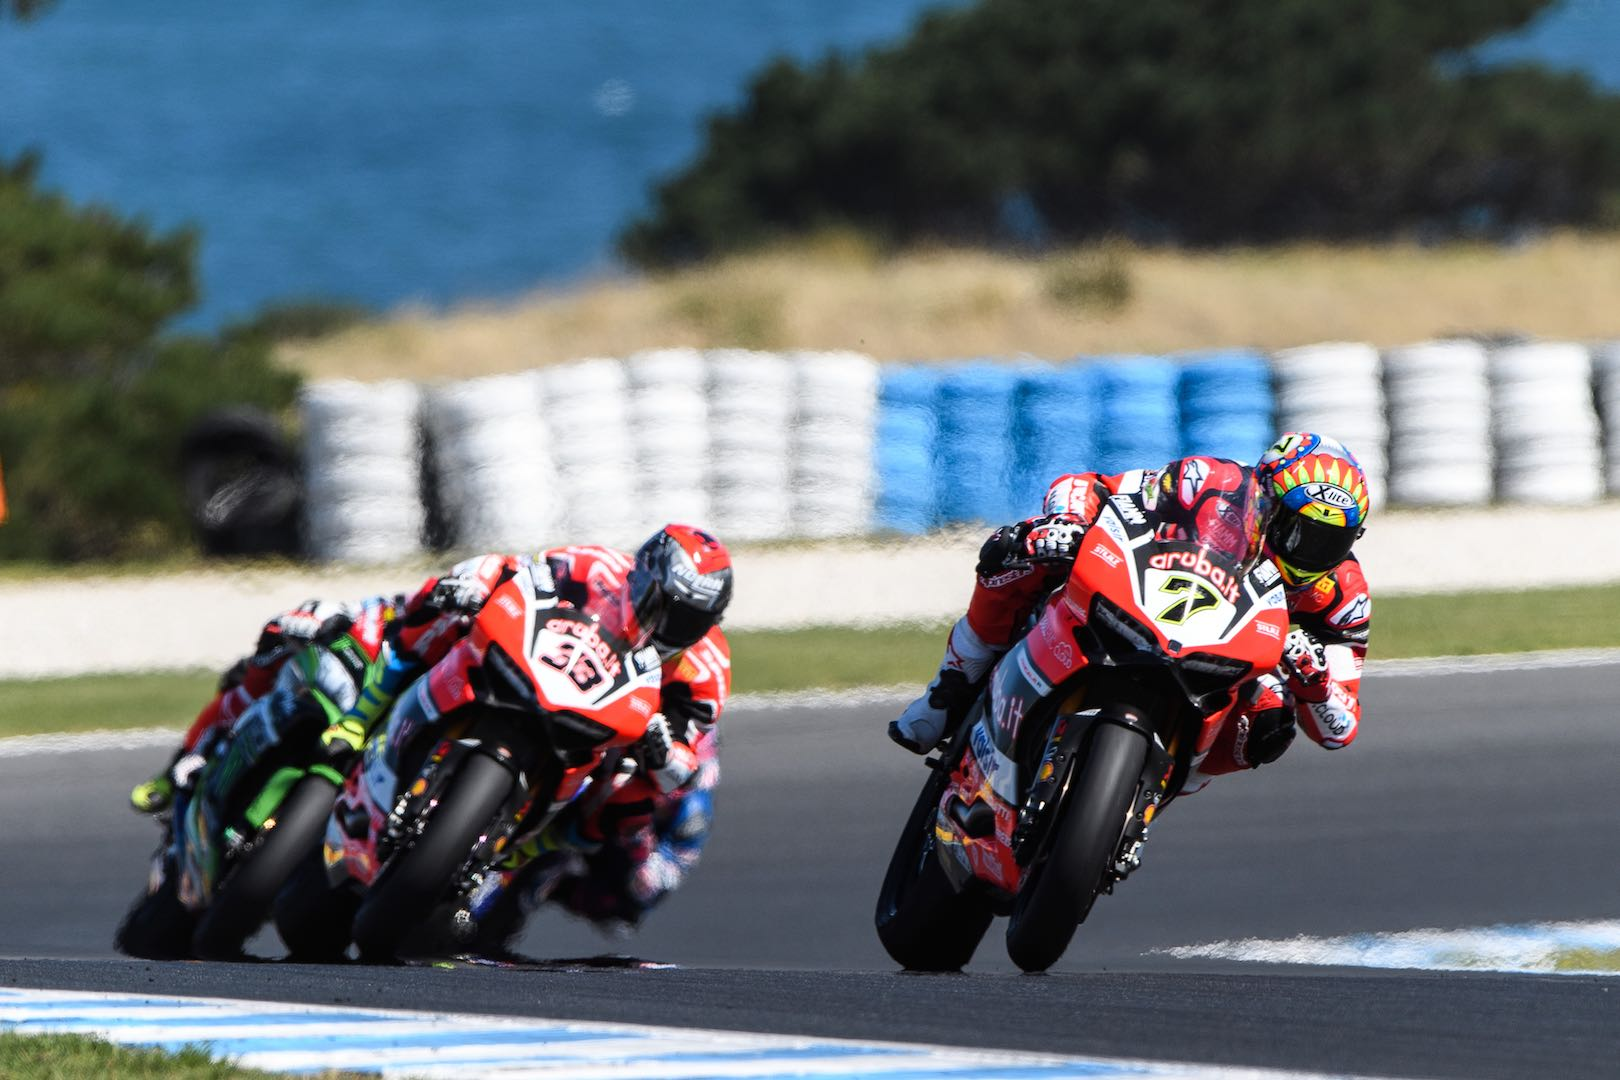 2017 Thailand World Superbike Preview: Ducati's Chaz Davies